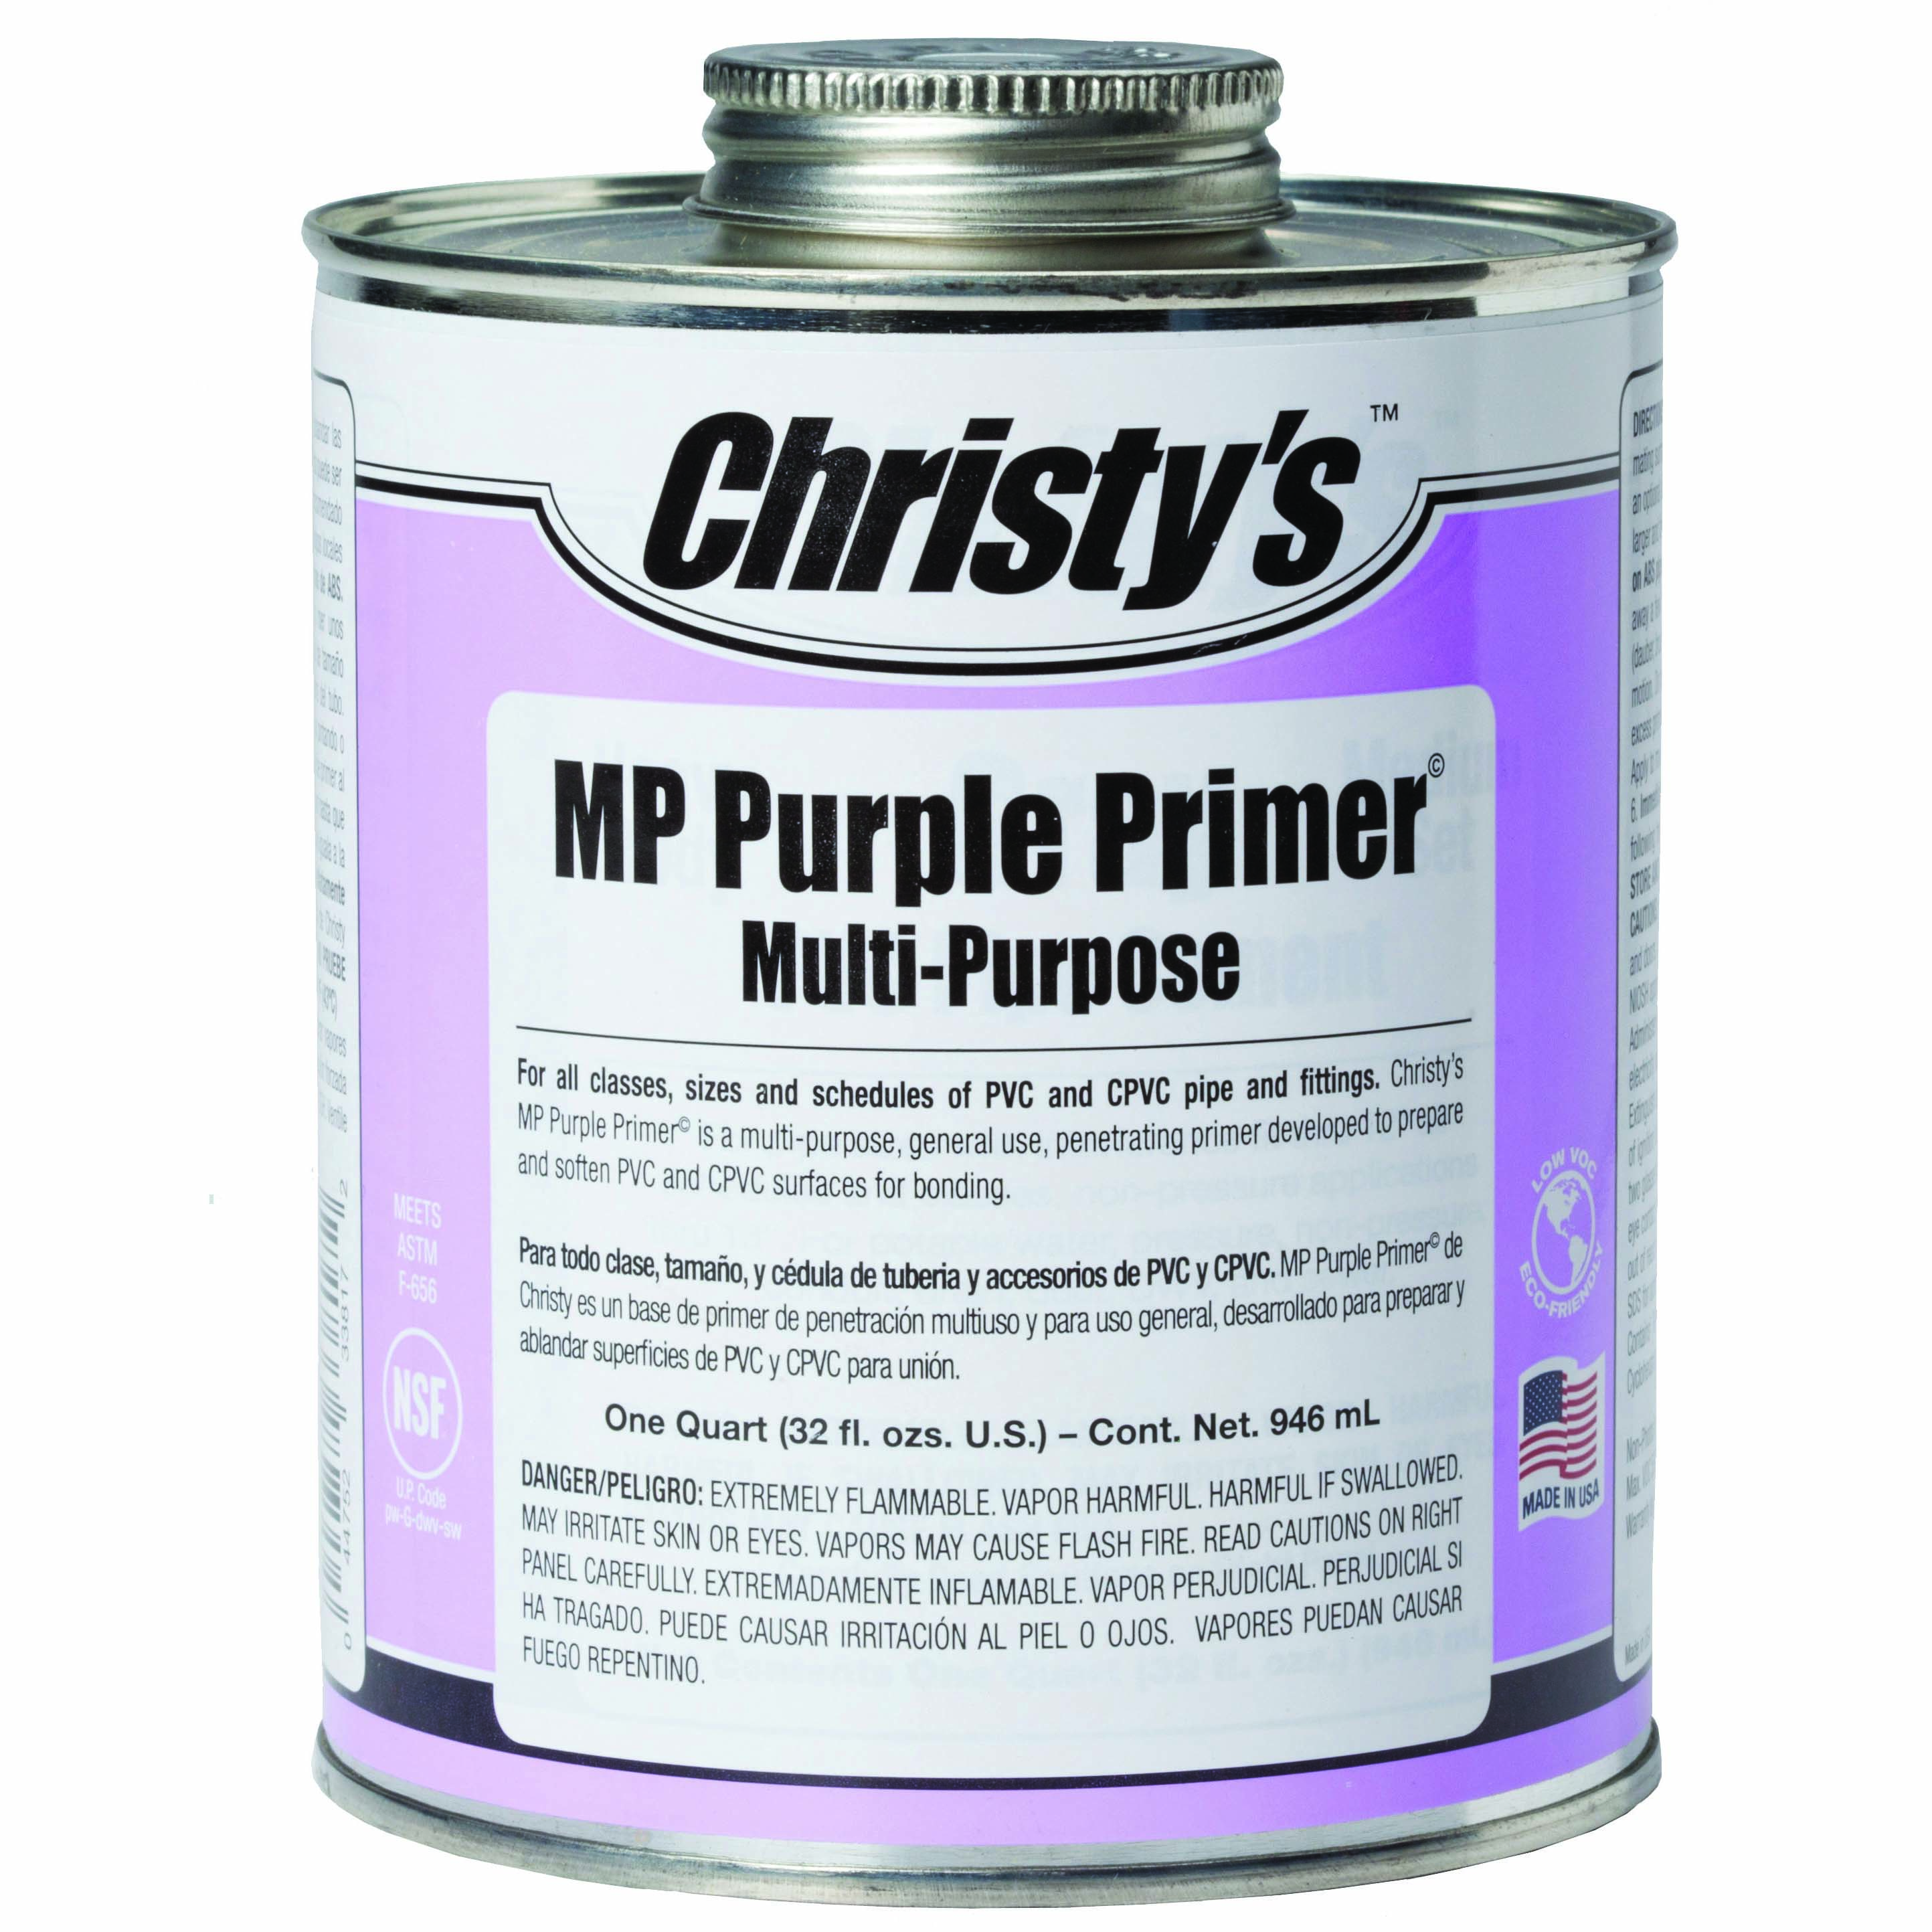 MP Purple Primer